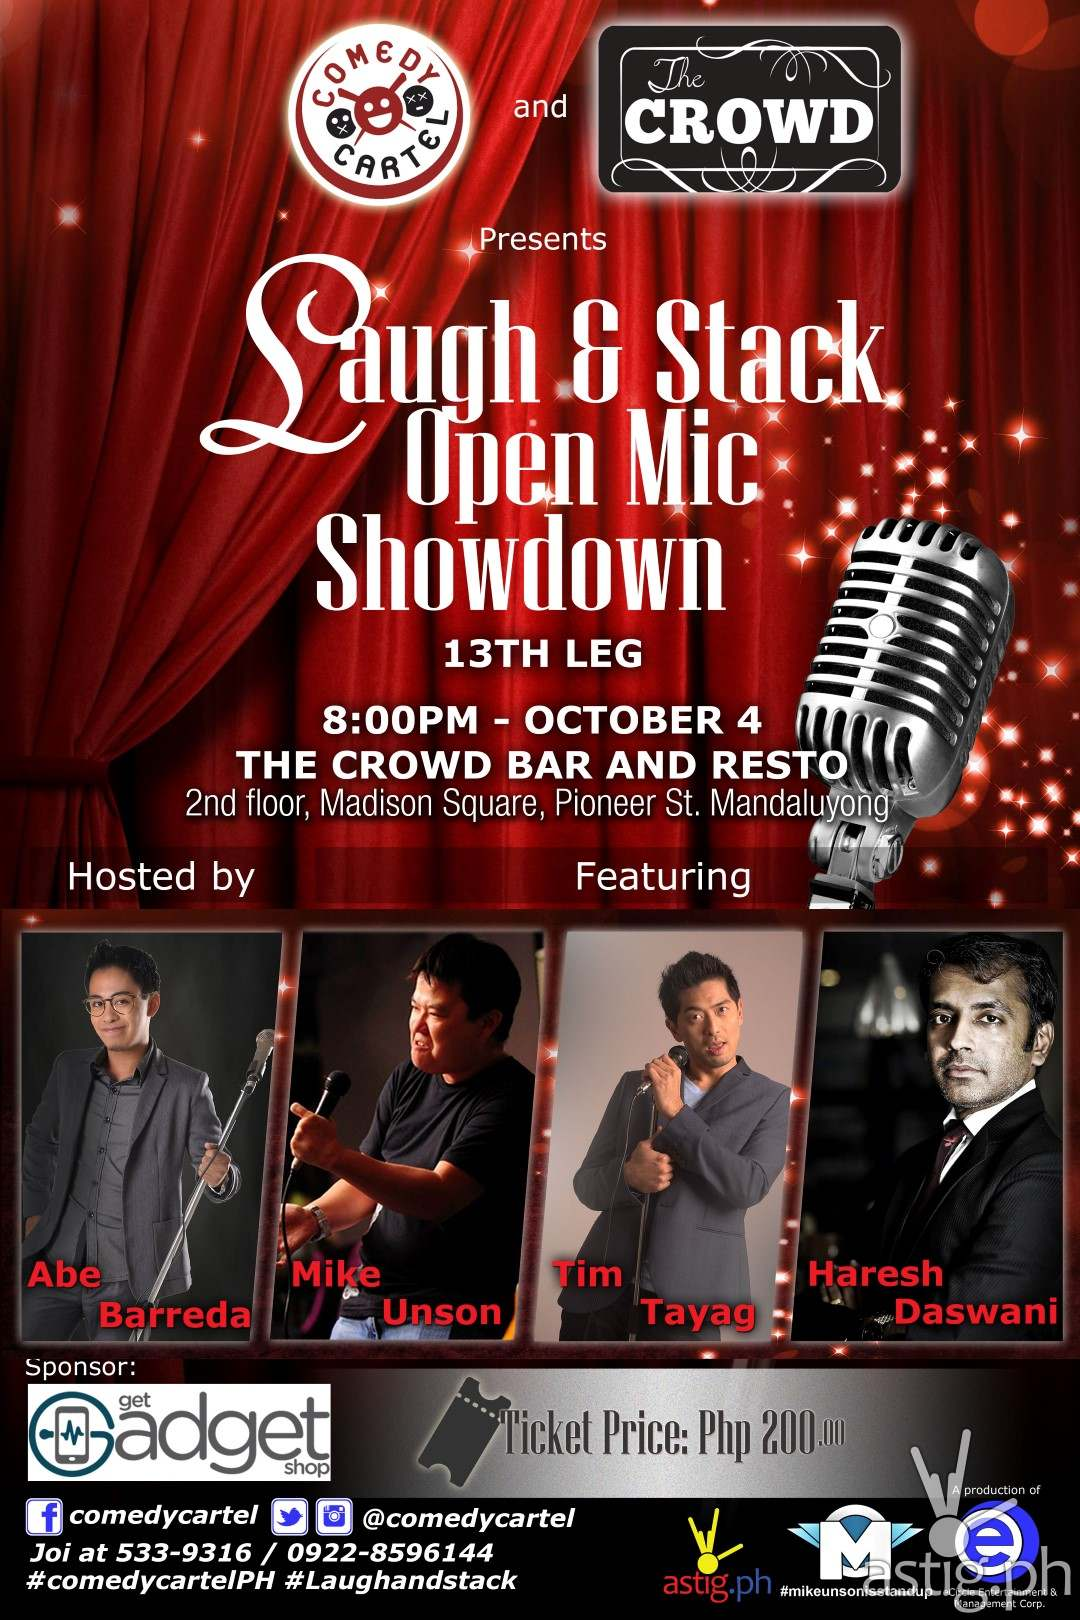 Laugh & Stack mic showdown Comedy Cartel